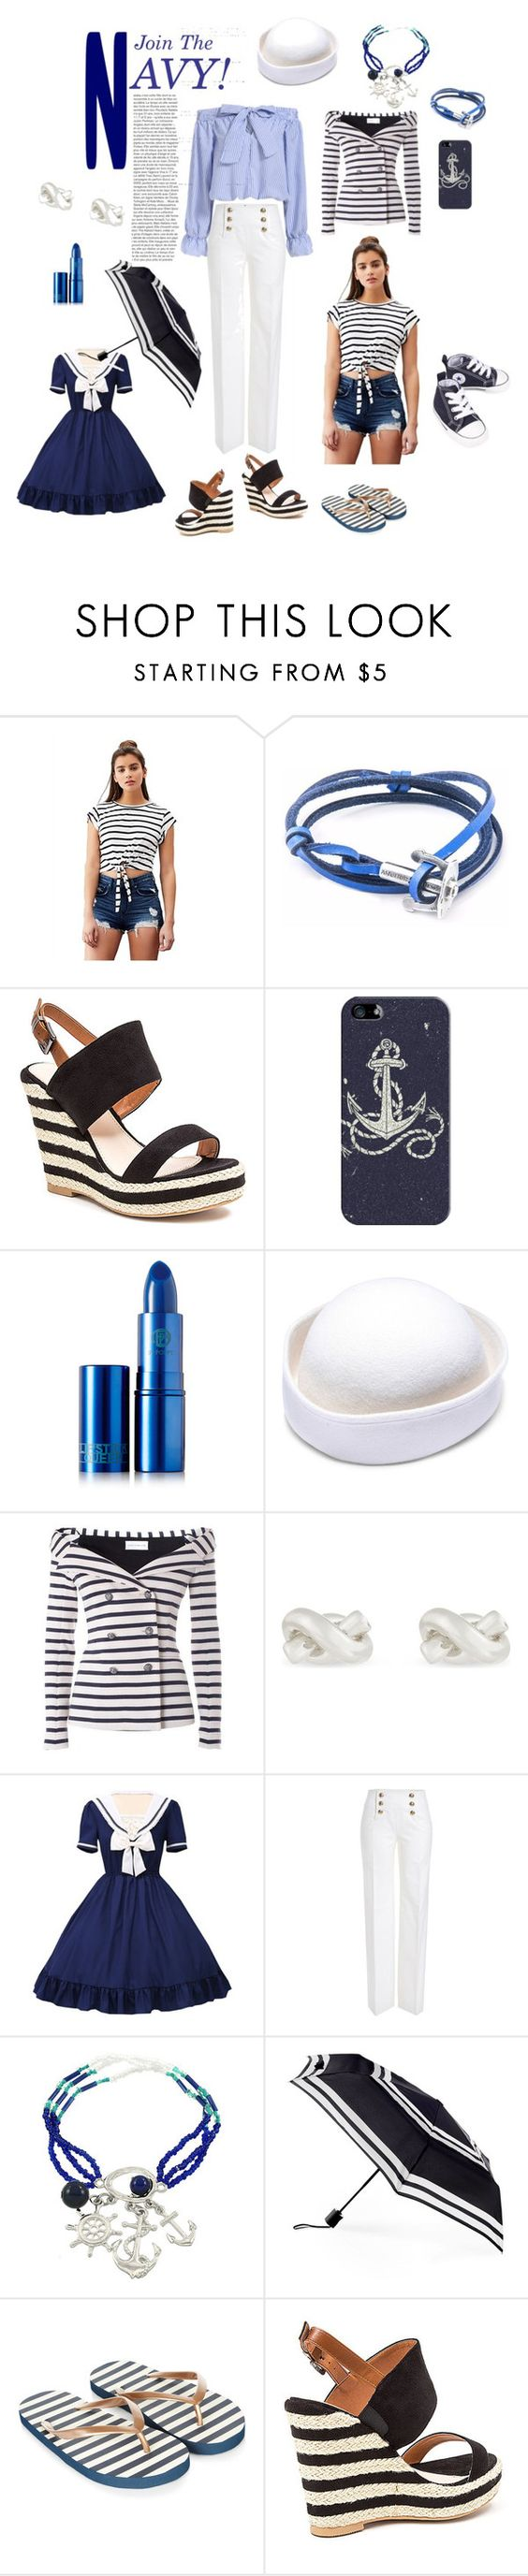 """Join the Navy!"" by jaymagic ❤ liked on Polyvore featuring Lovers + Friends, Anchor & Crew, bleu, French Blu, Casetify, Lipstick Queen, Faith Connexion, Kate Spade, Emilio Pucci and ShedRain"